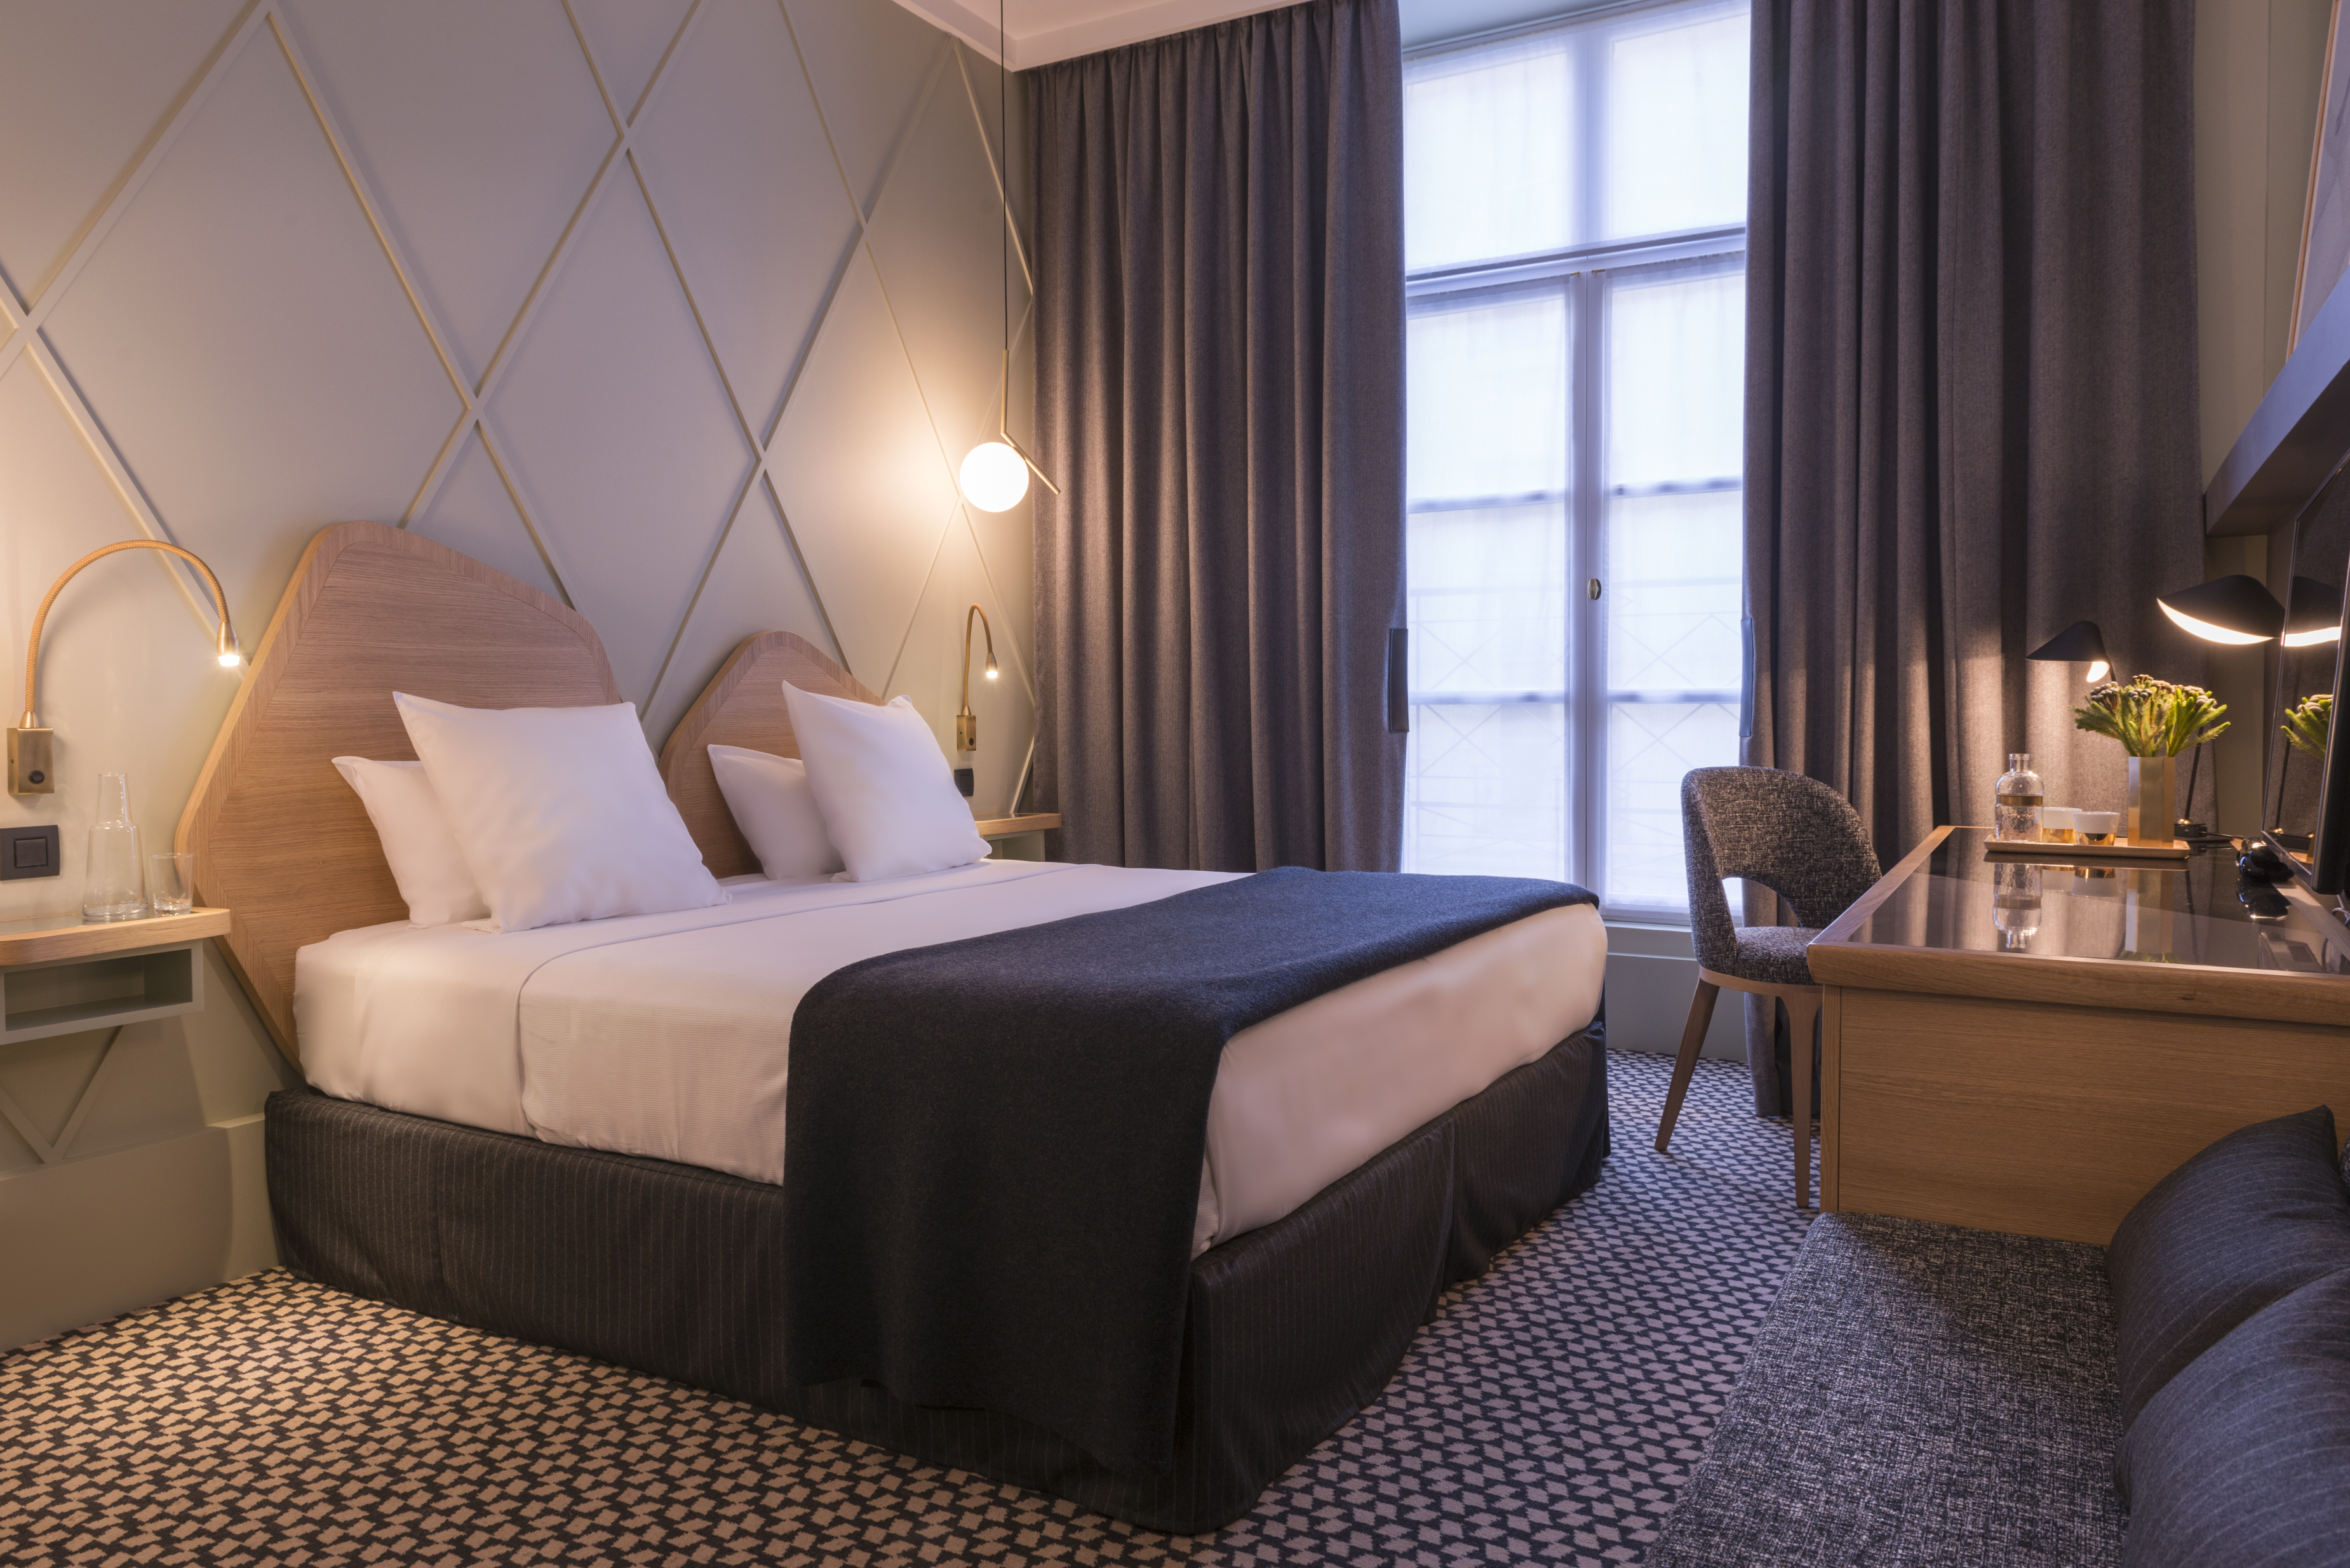 Millesime hotel sur h tel paris for Trouver un hotel paris